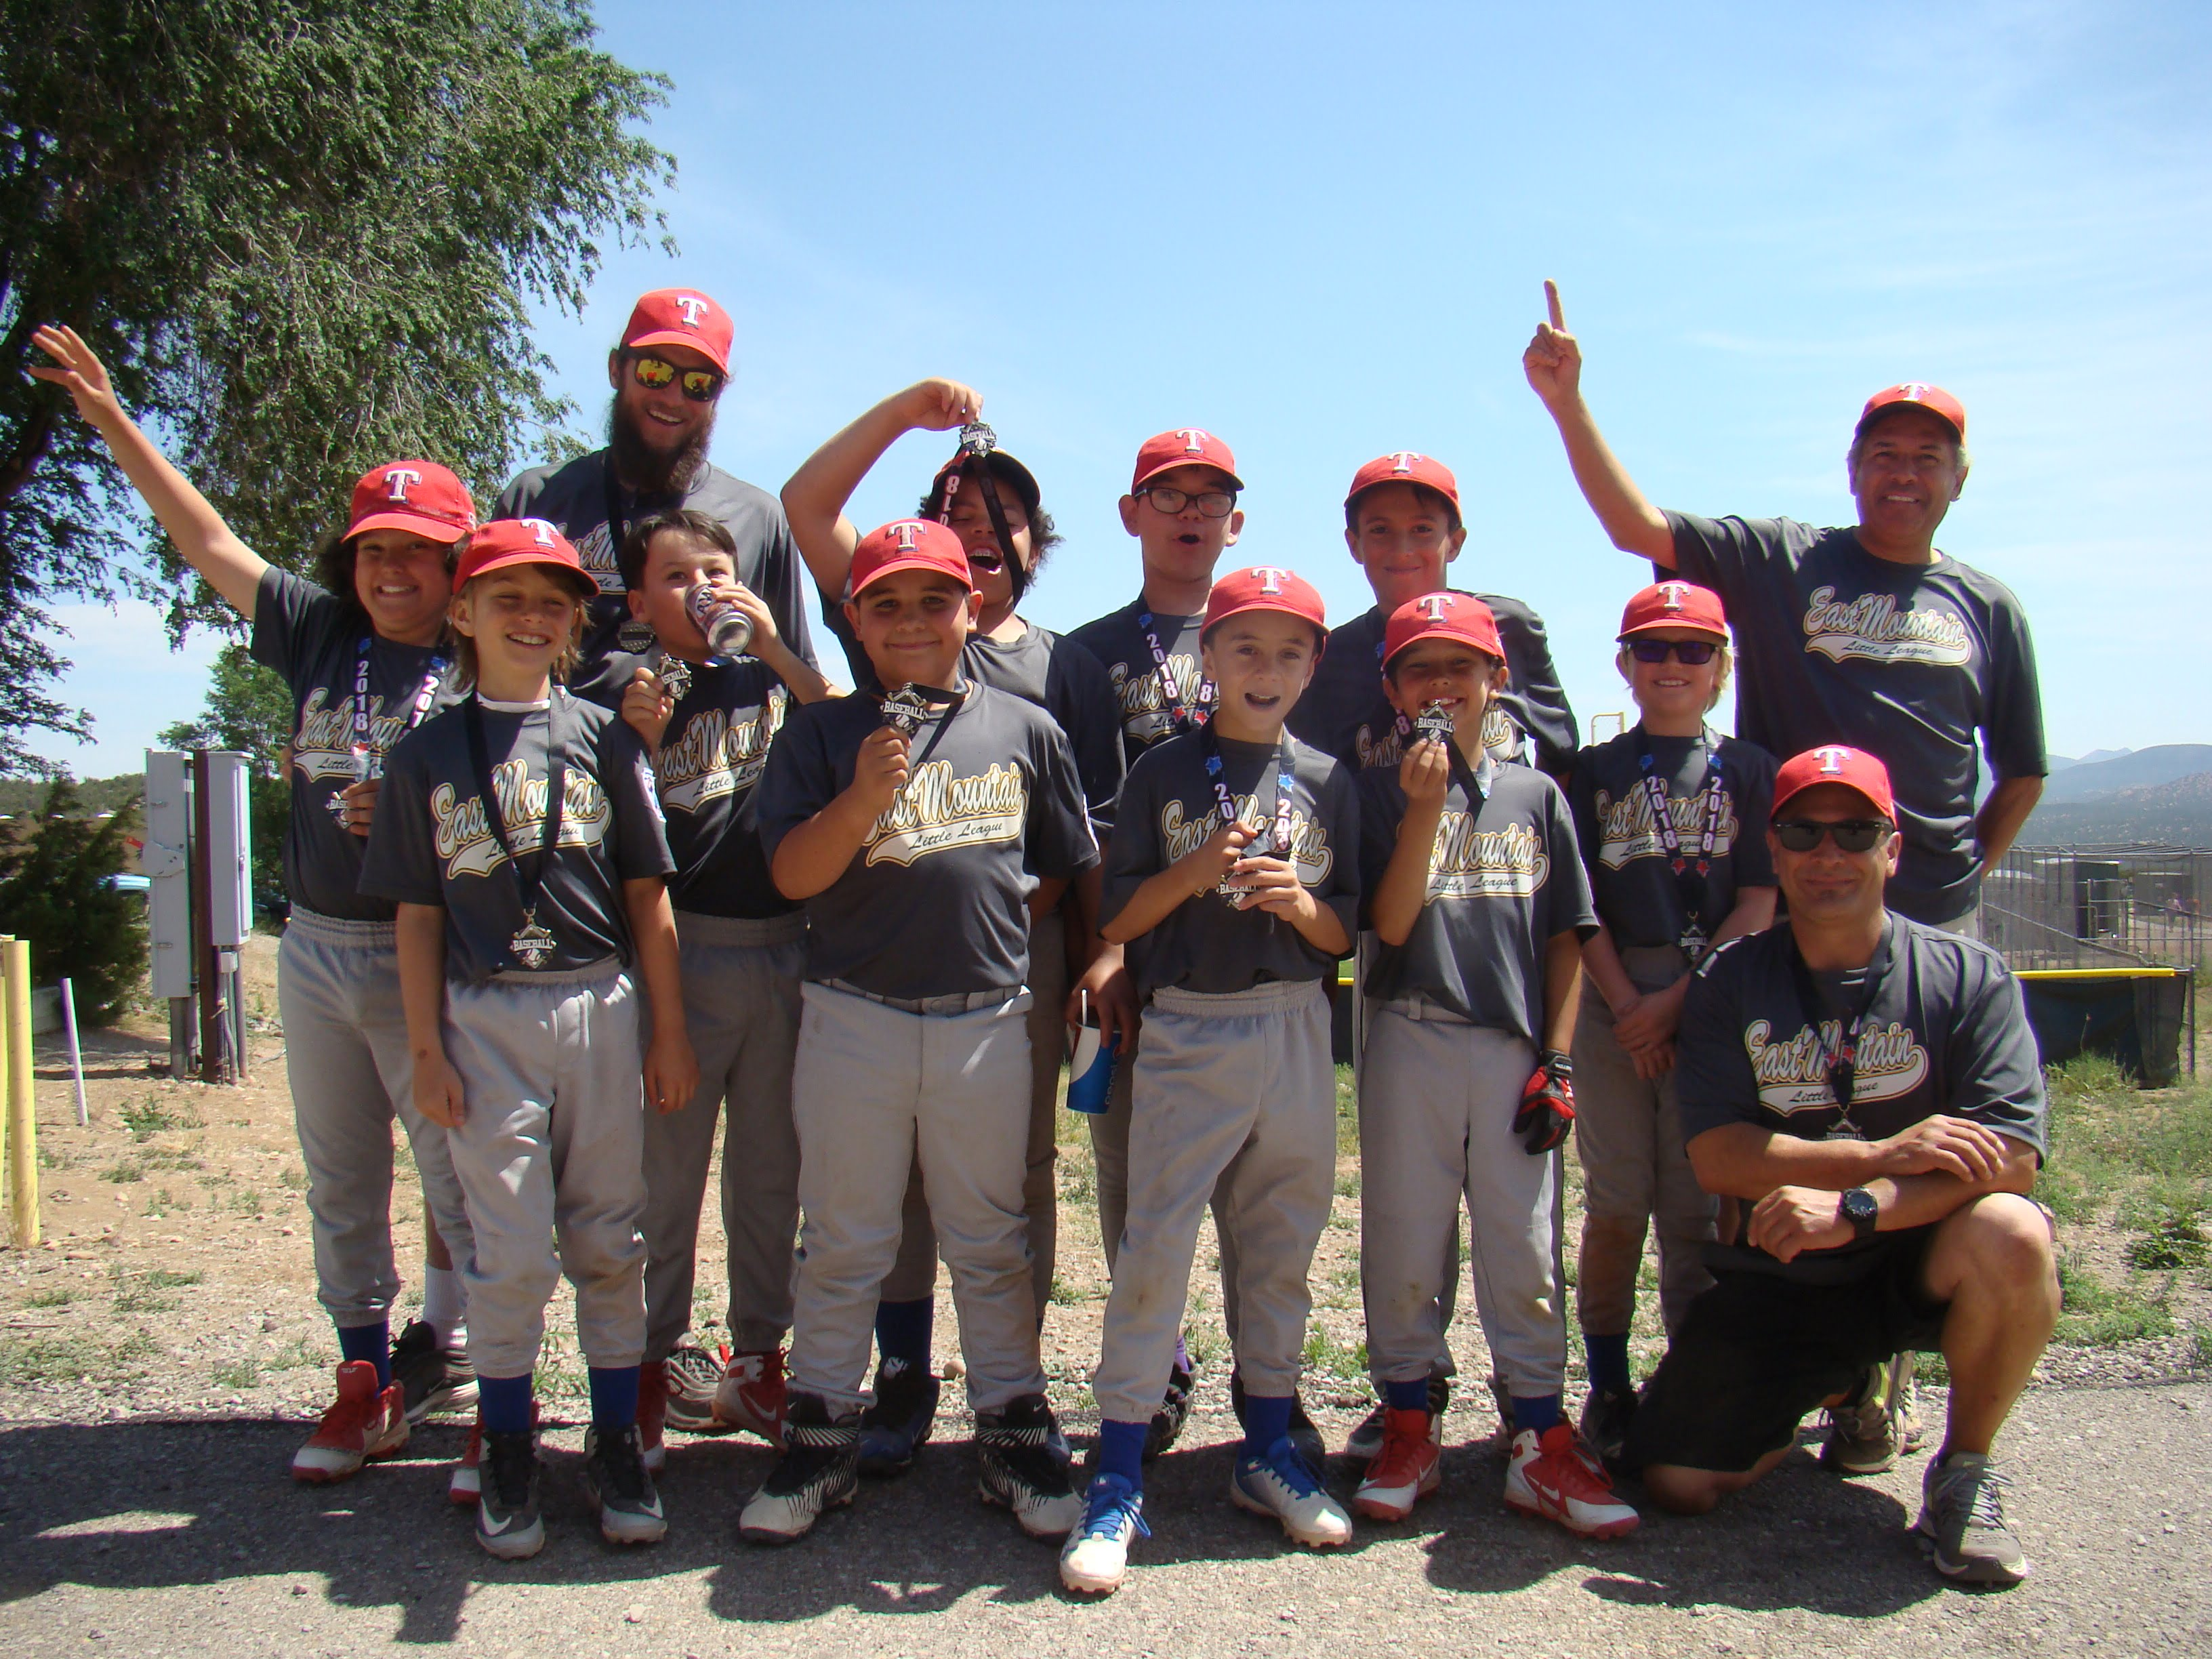 East Mtn. Little League season ends with tournament championships